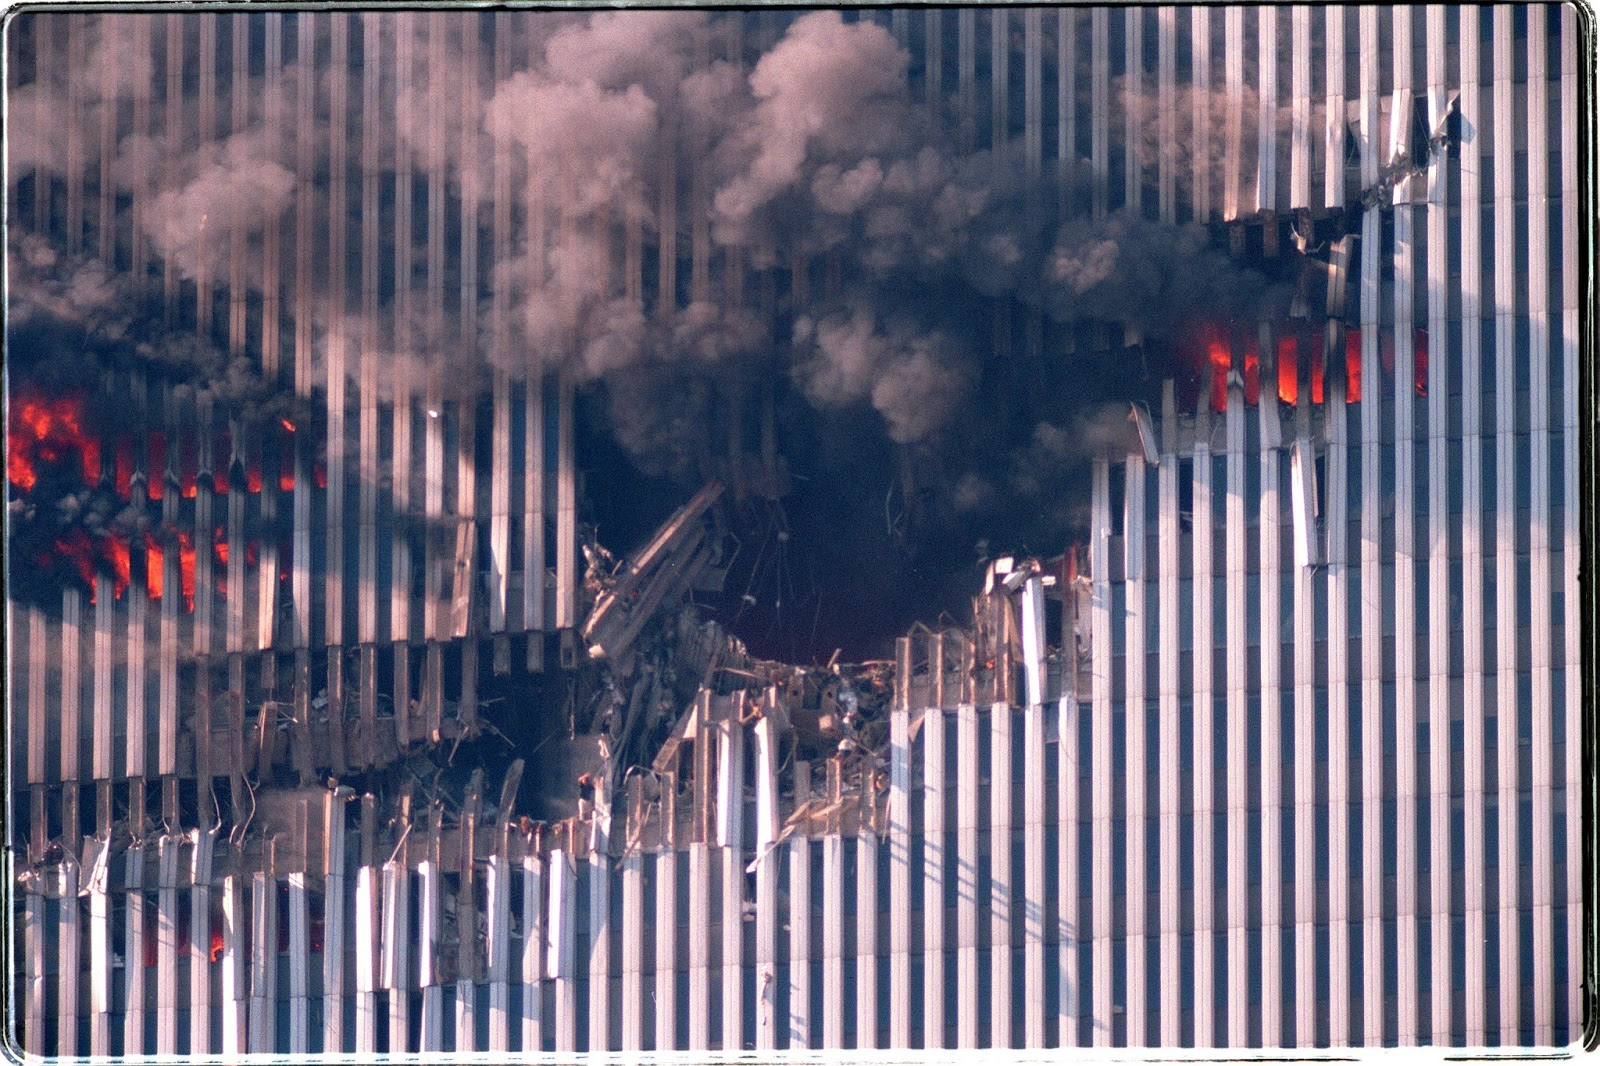 WTC1 airplane hole